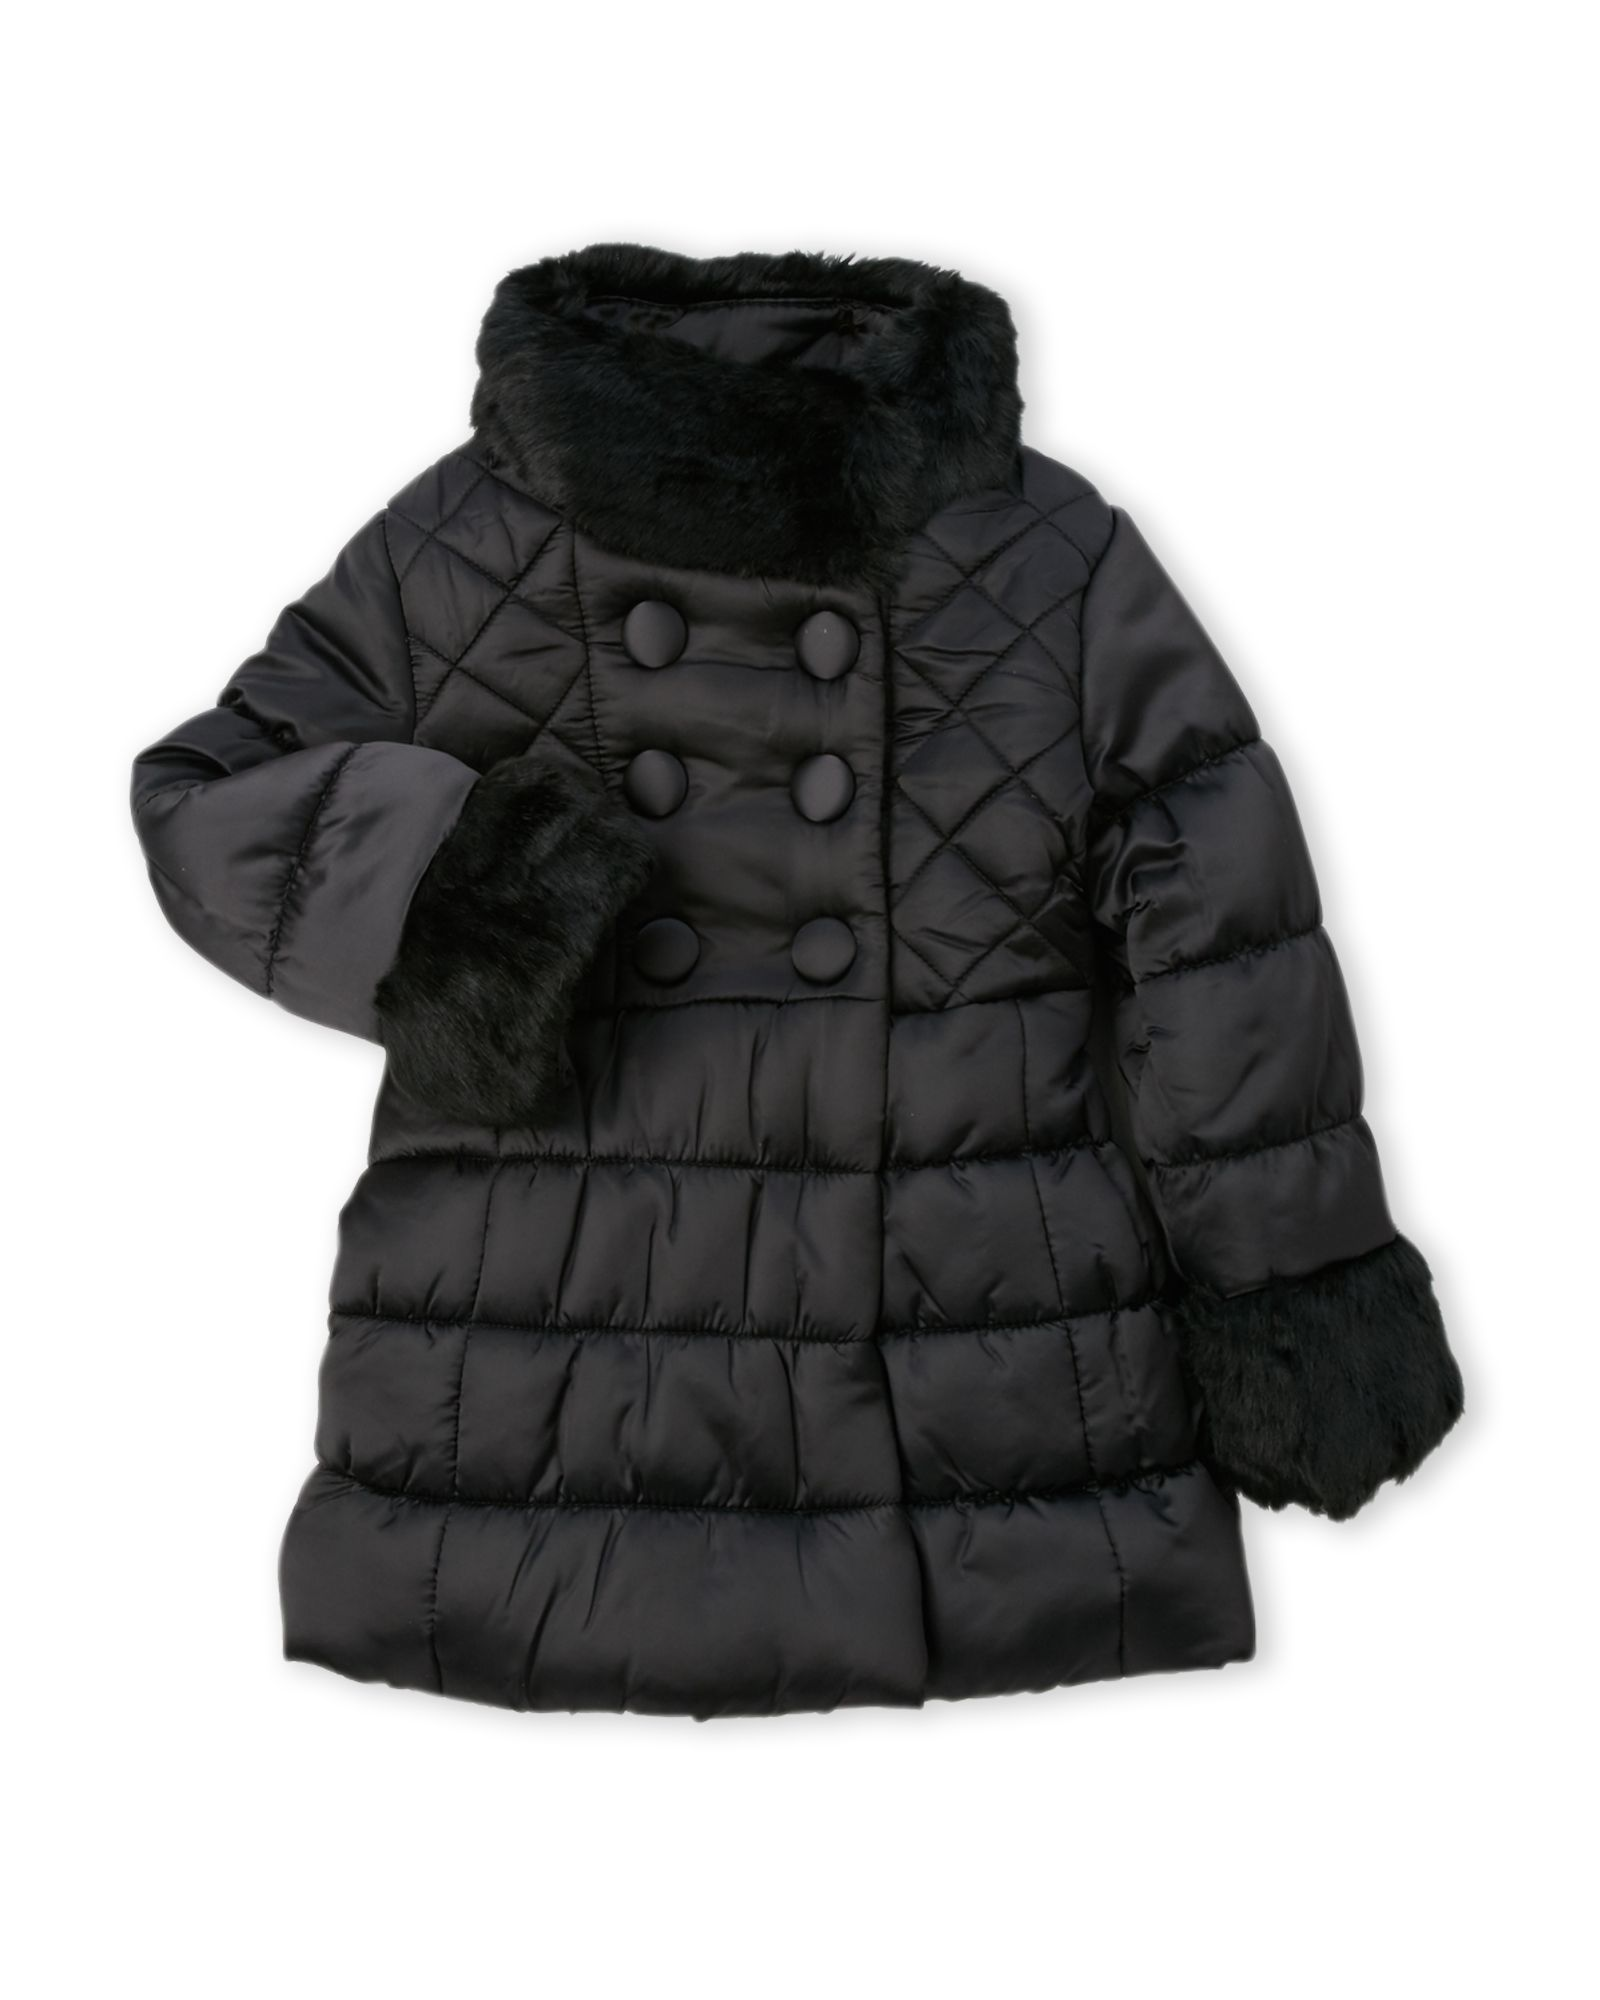 097a0e10aa1e Toddler Girls) Faux Fur Trim Quilted Coat